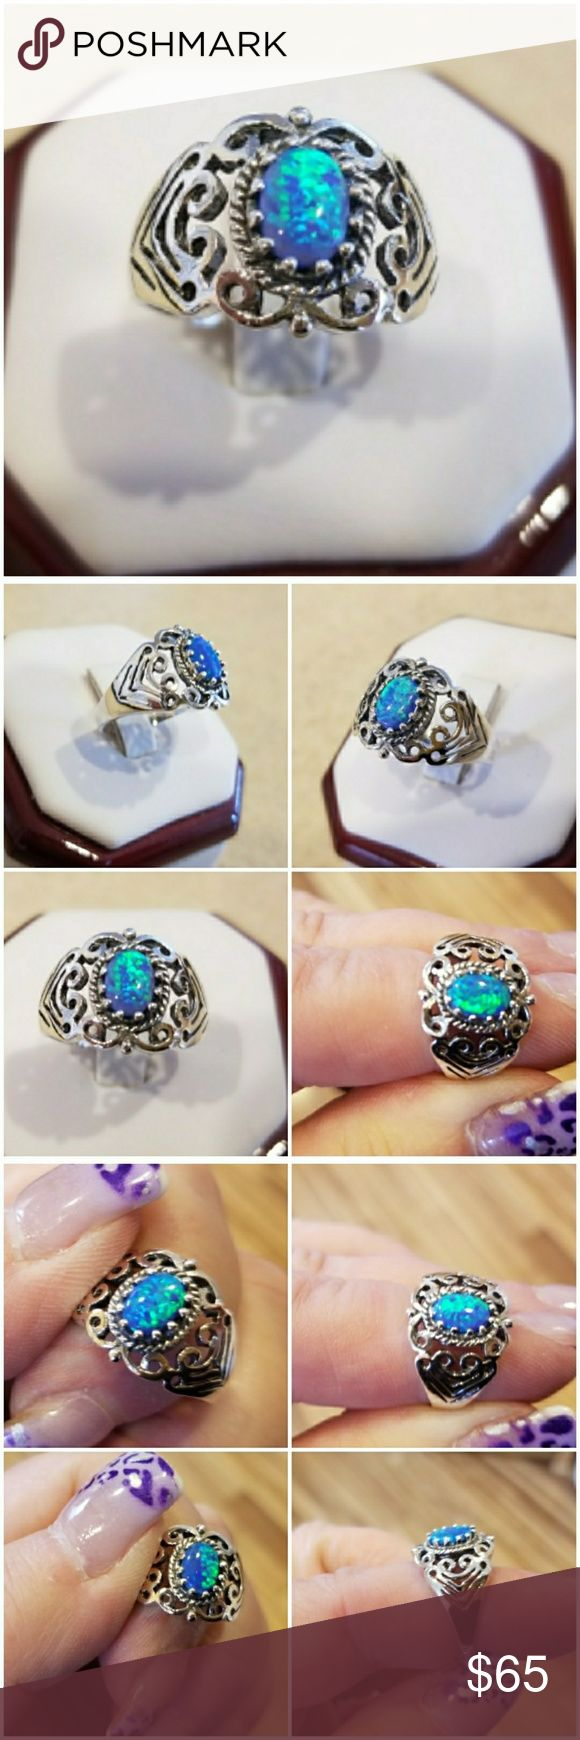 Genuine 2ct Blue Fire Opal Ring Size 7 Beautiful Art Deco Filigree Design!  Set in 925 stamped Solid Sterling Silver. Please see all pictures for more detail. Brand New. Never Worn. WHOLESALE Prices Always!! Jewelry Rings